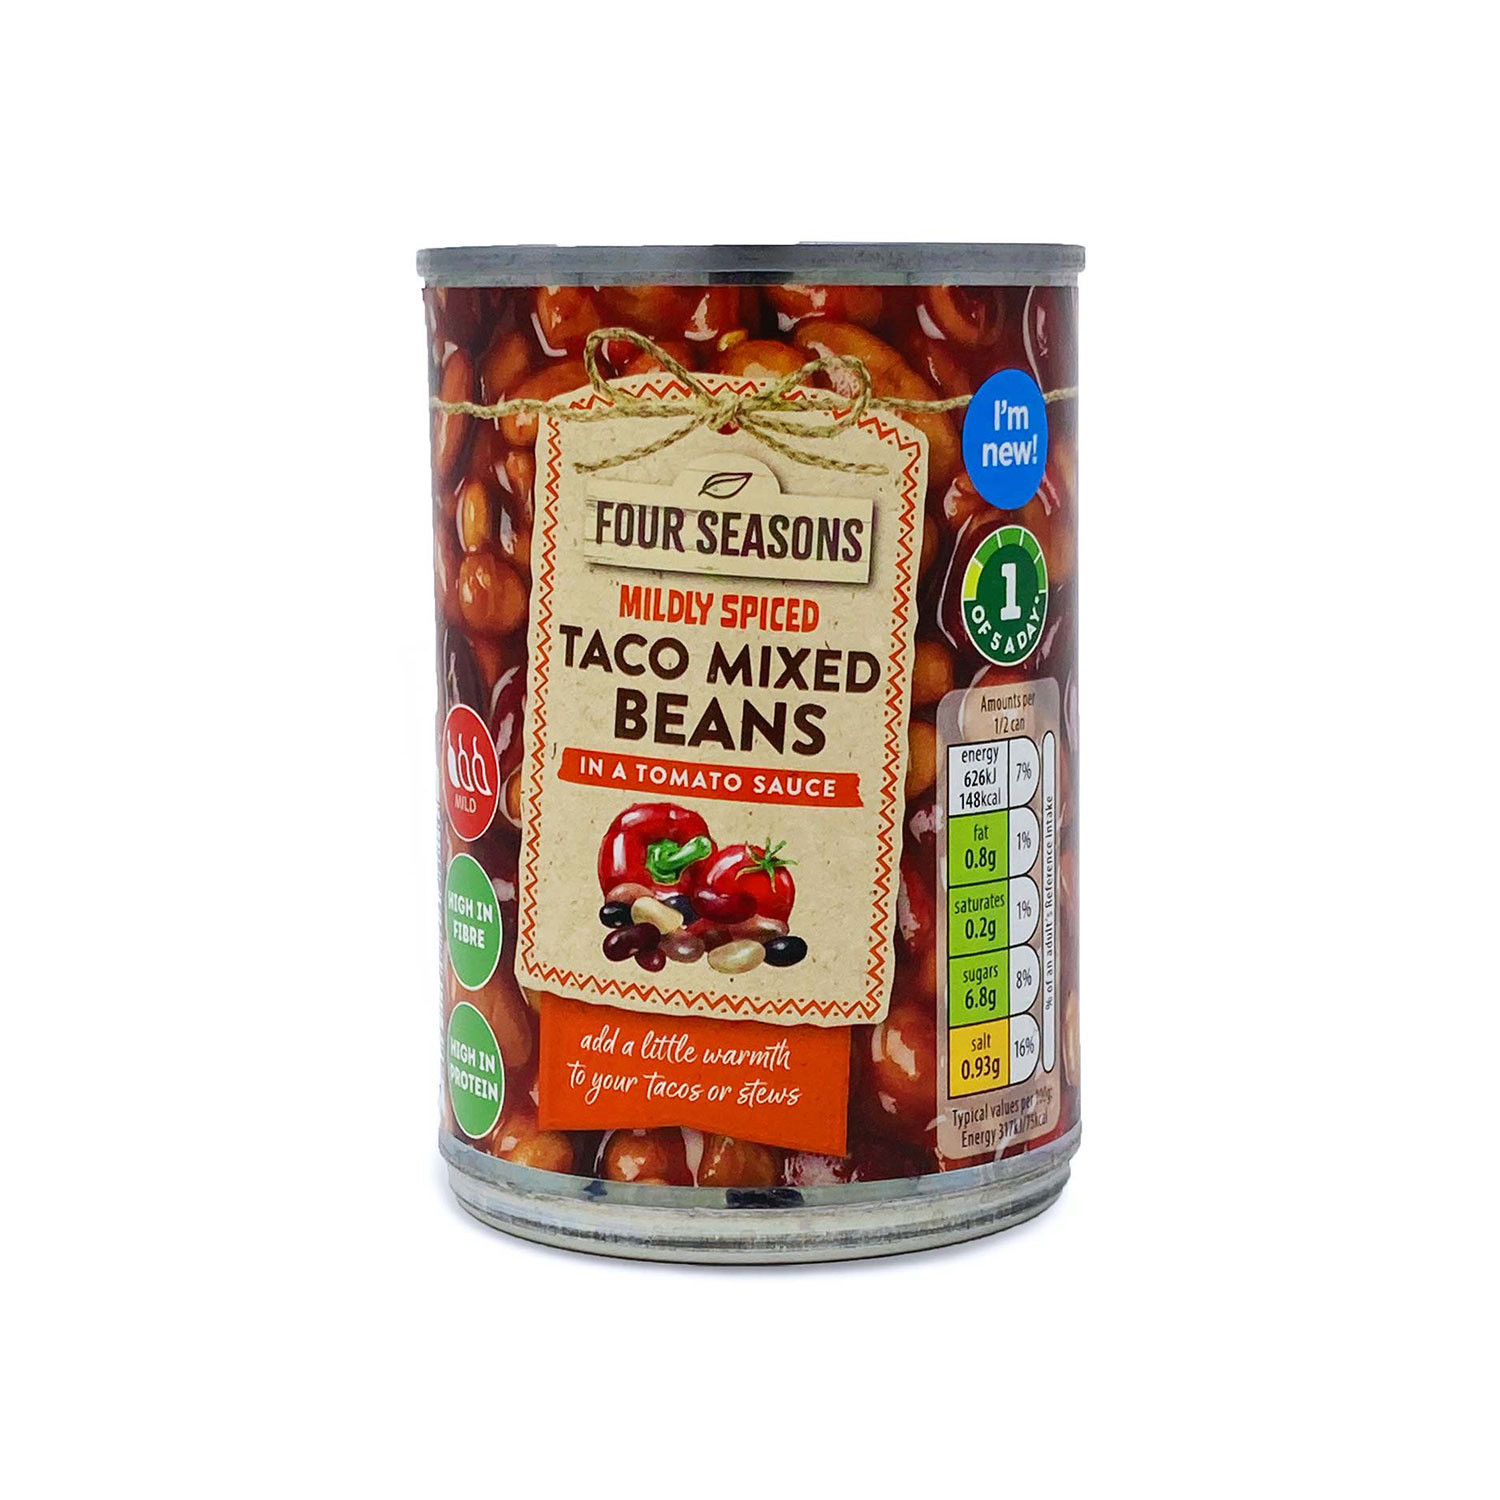 Mildly Spiced Taco Mixed Beans